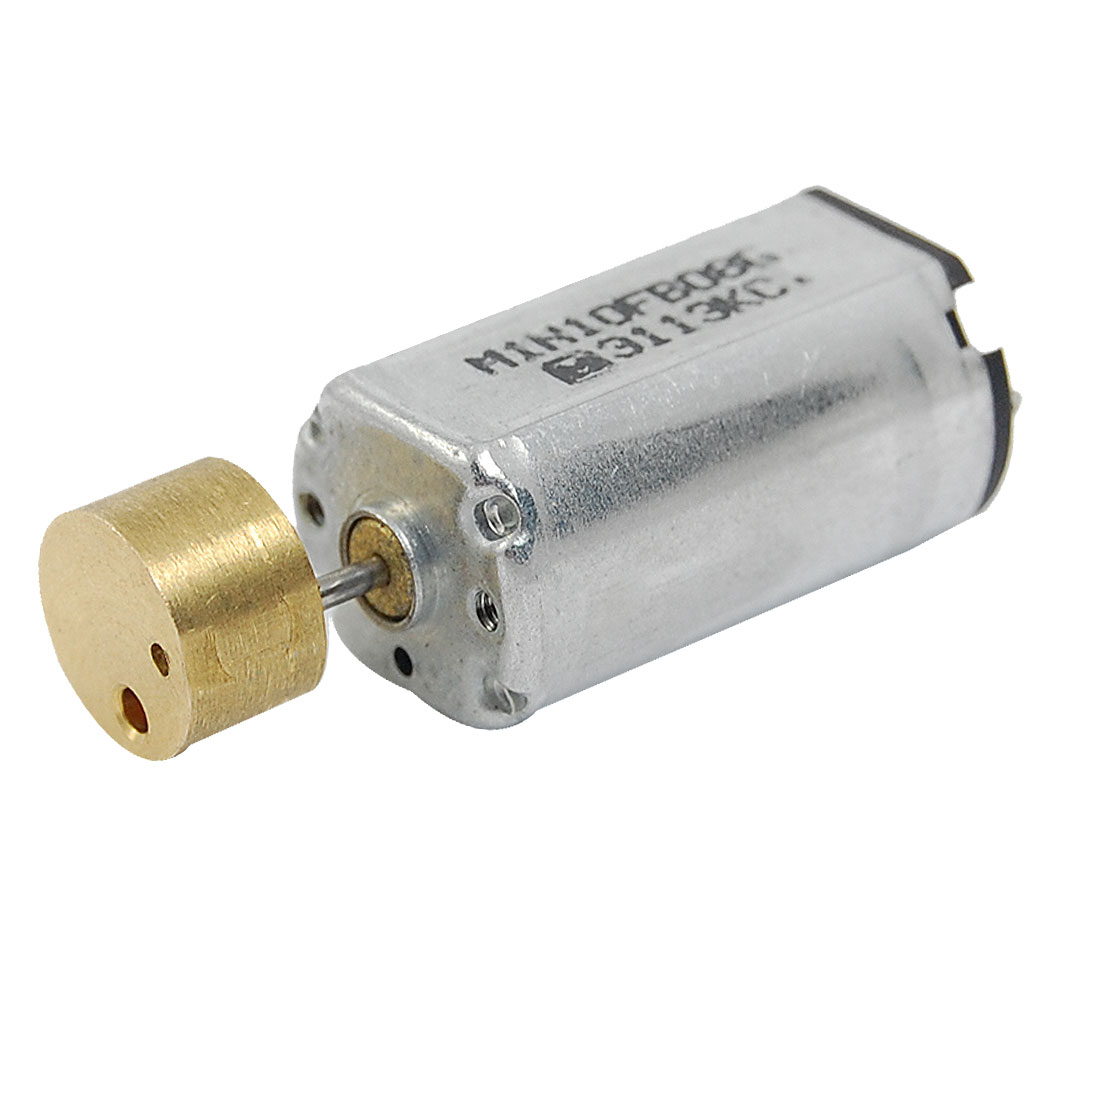 6V-10000RPM-Output-Speed-0-04A-DC-Micro-Vibration-Motor